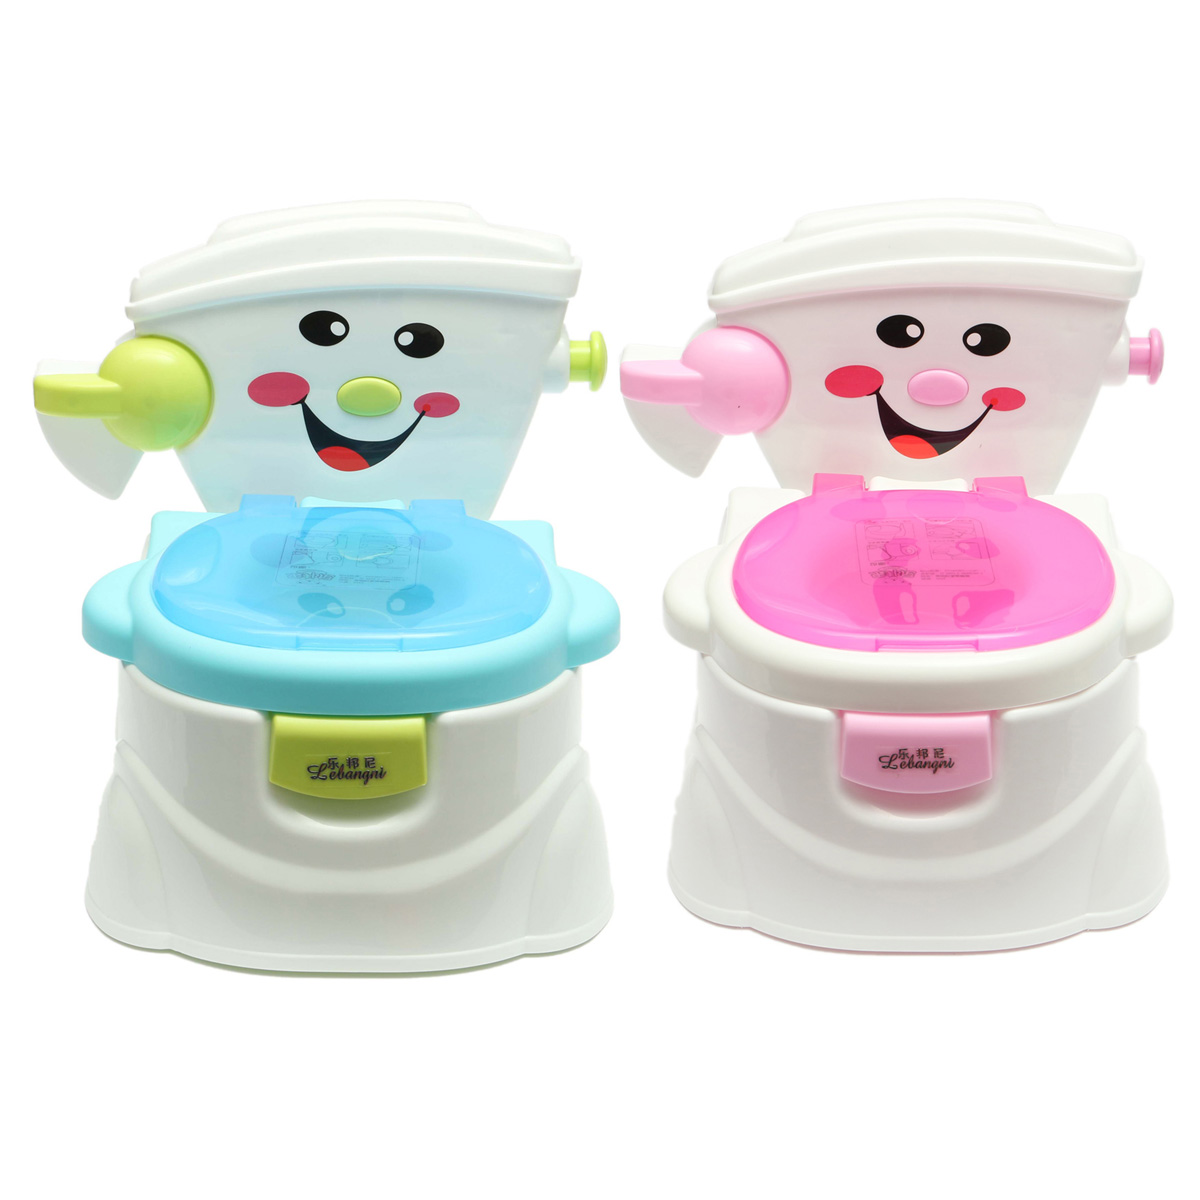 singing potty chair invacare power chairs reviews potties and trainer seats child urinal training baby